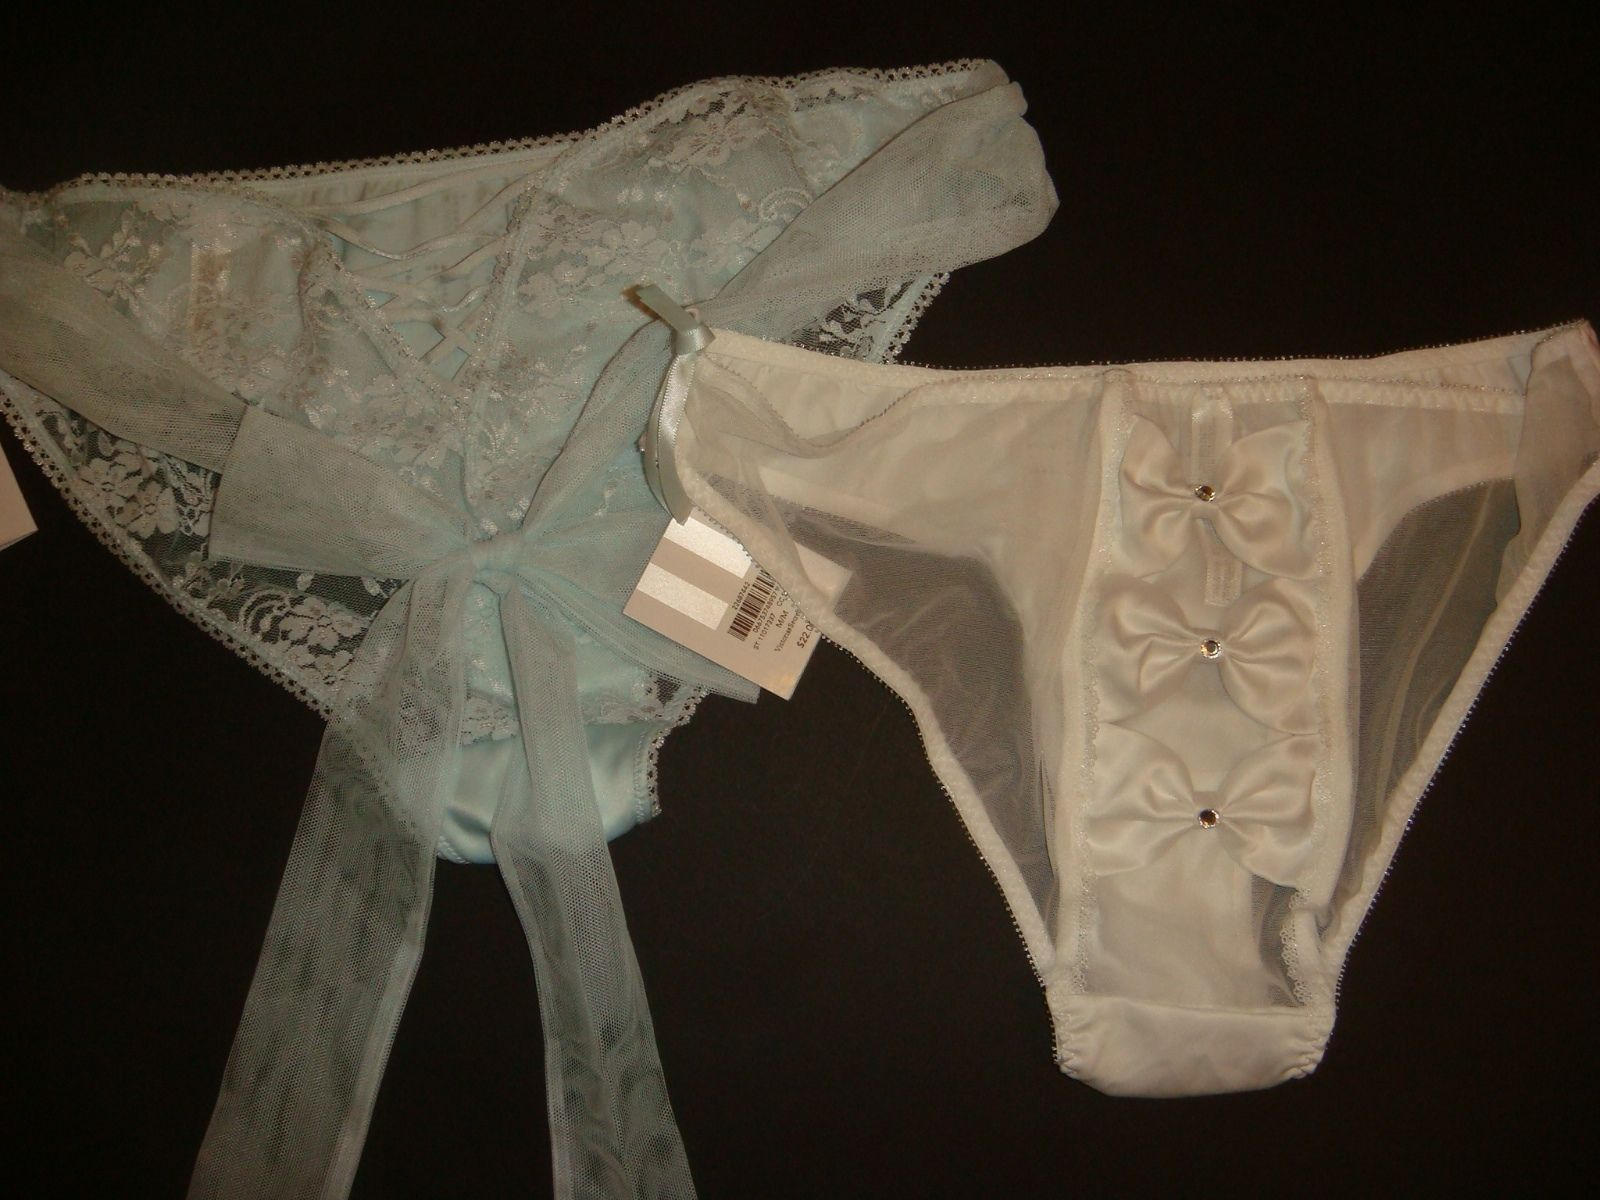 b67396475a29 Victoria's Secret M BABYDOLL+panty crystallized BLUE white Just married  BRIDAL